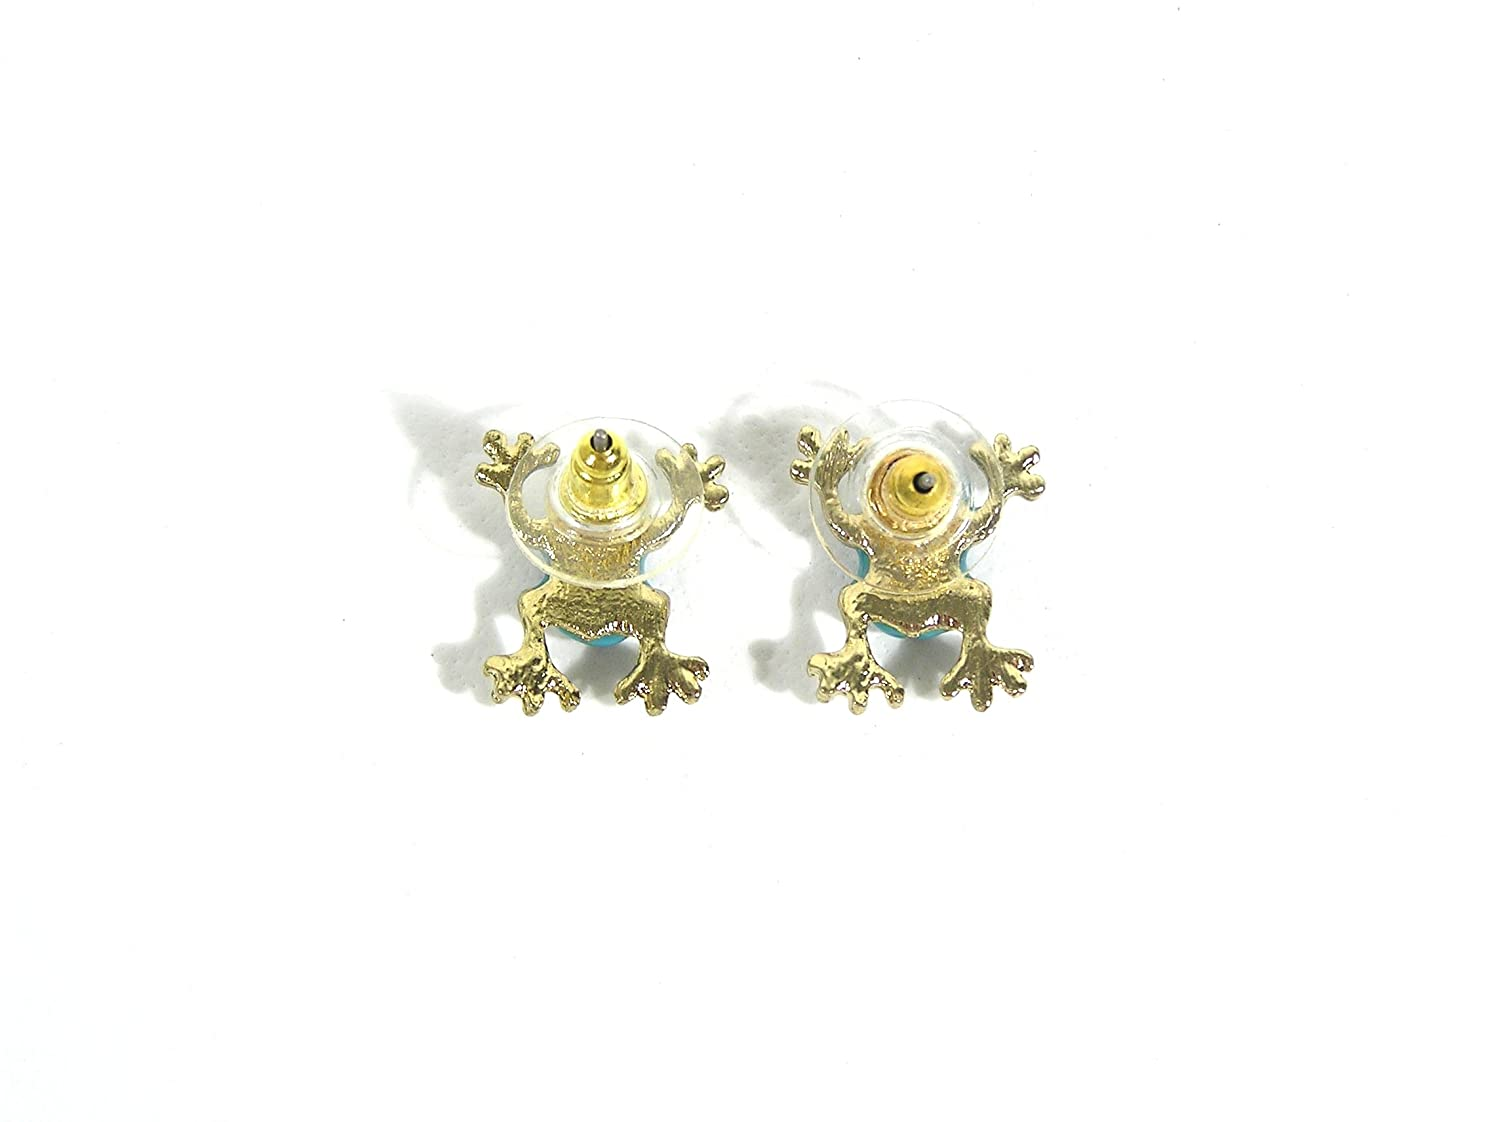 Tree Frog Stud Earrings Teal Rainforest Toad EC04 Pave Posts Fashion Jewelry